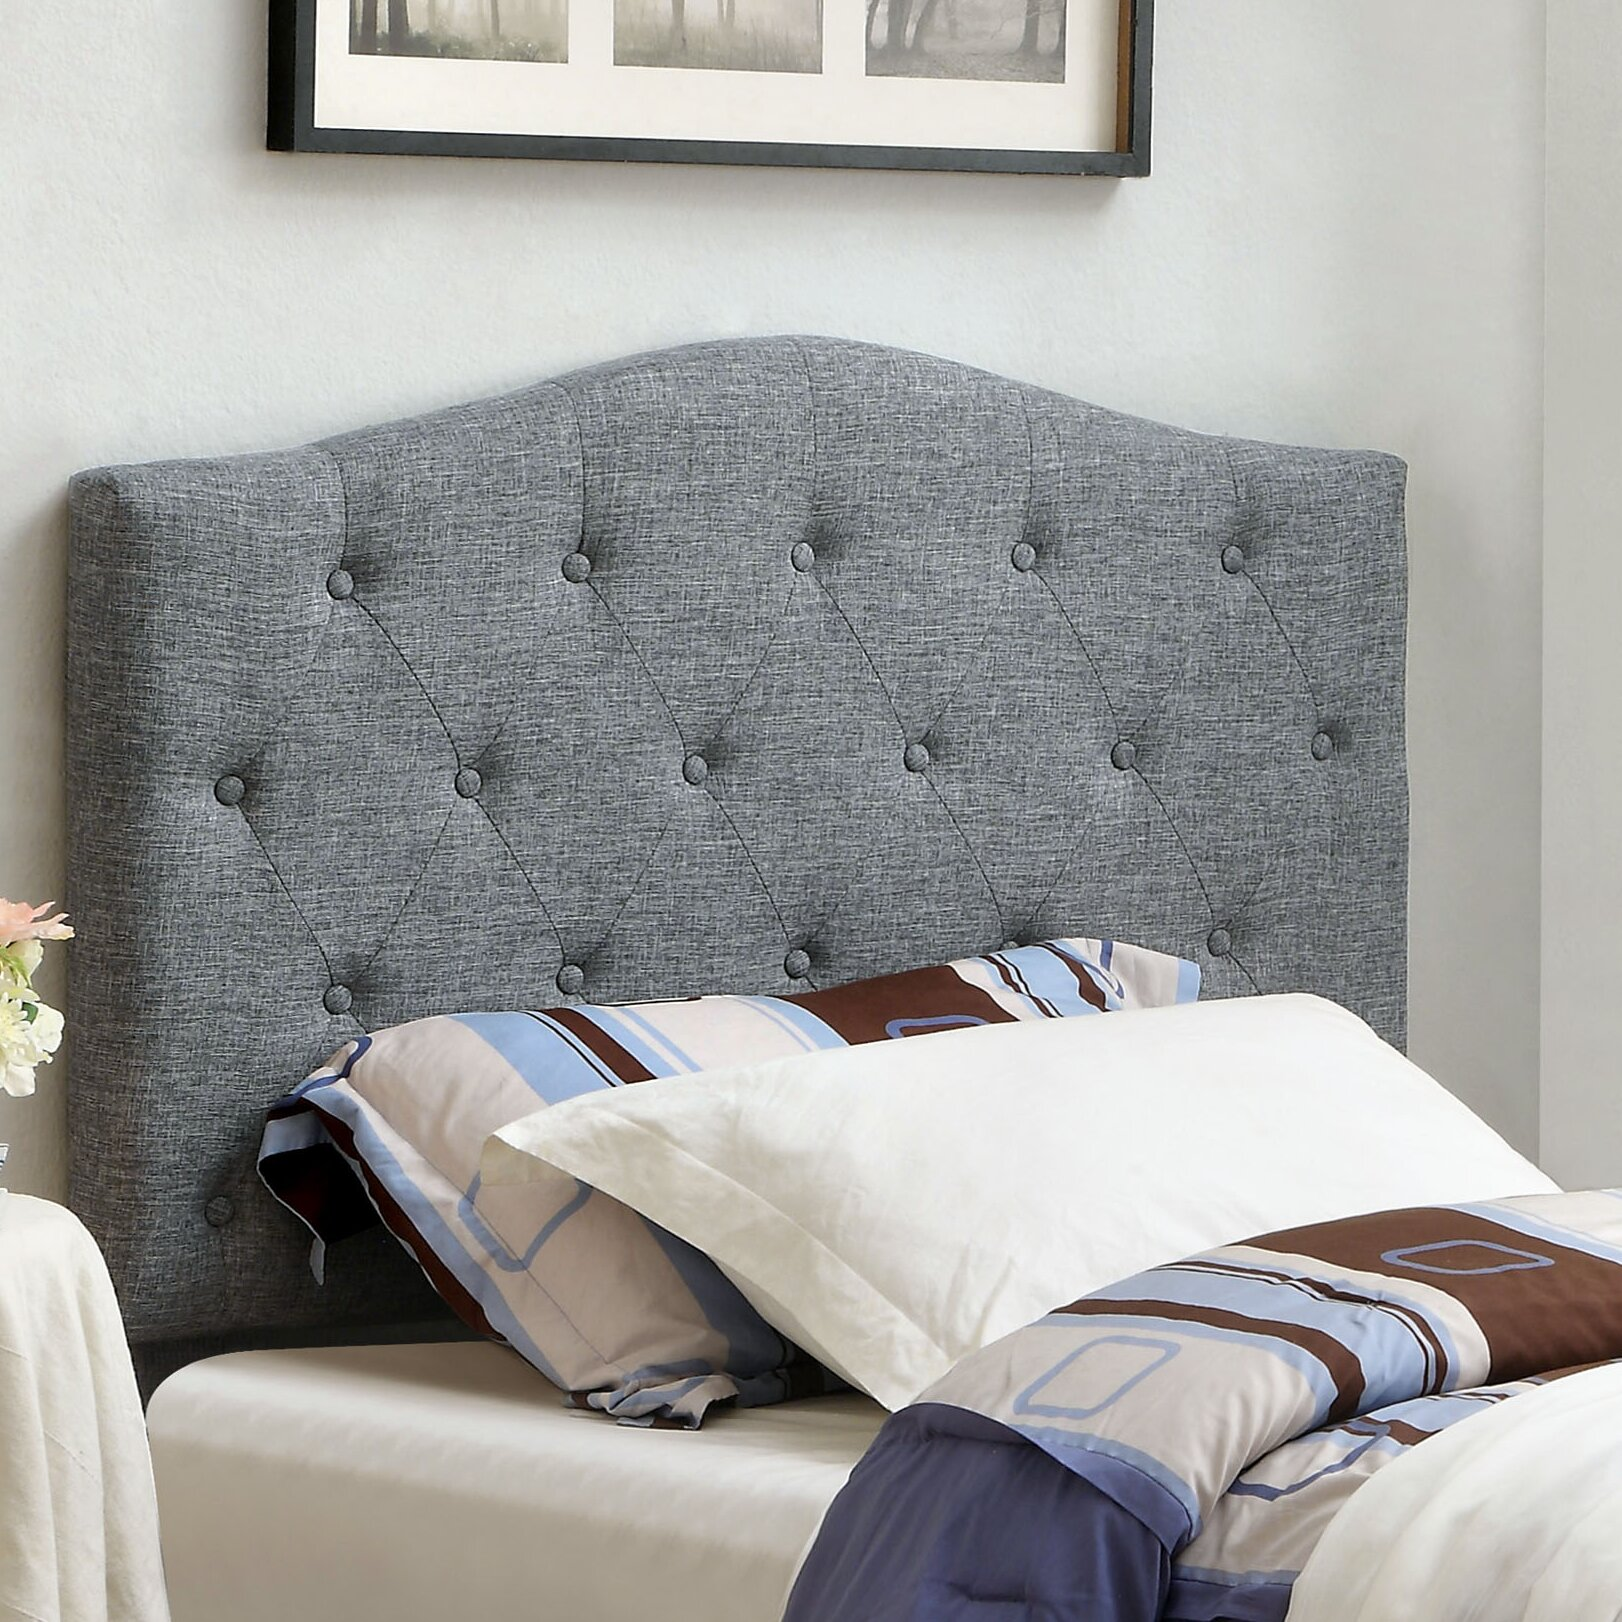 Charlton Home Scarcly Upholstered Panel Headboard Reviews  Classy Home  Furniture Reviews Best Furniture 2017. Classy Home Furniture Reviews   Arudis com